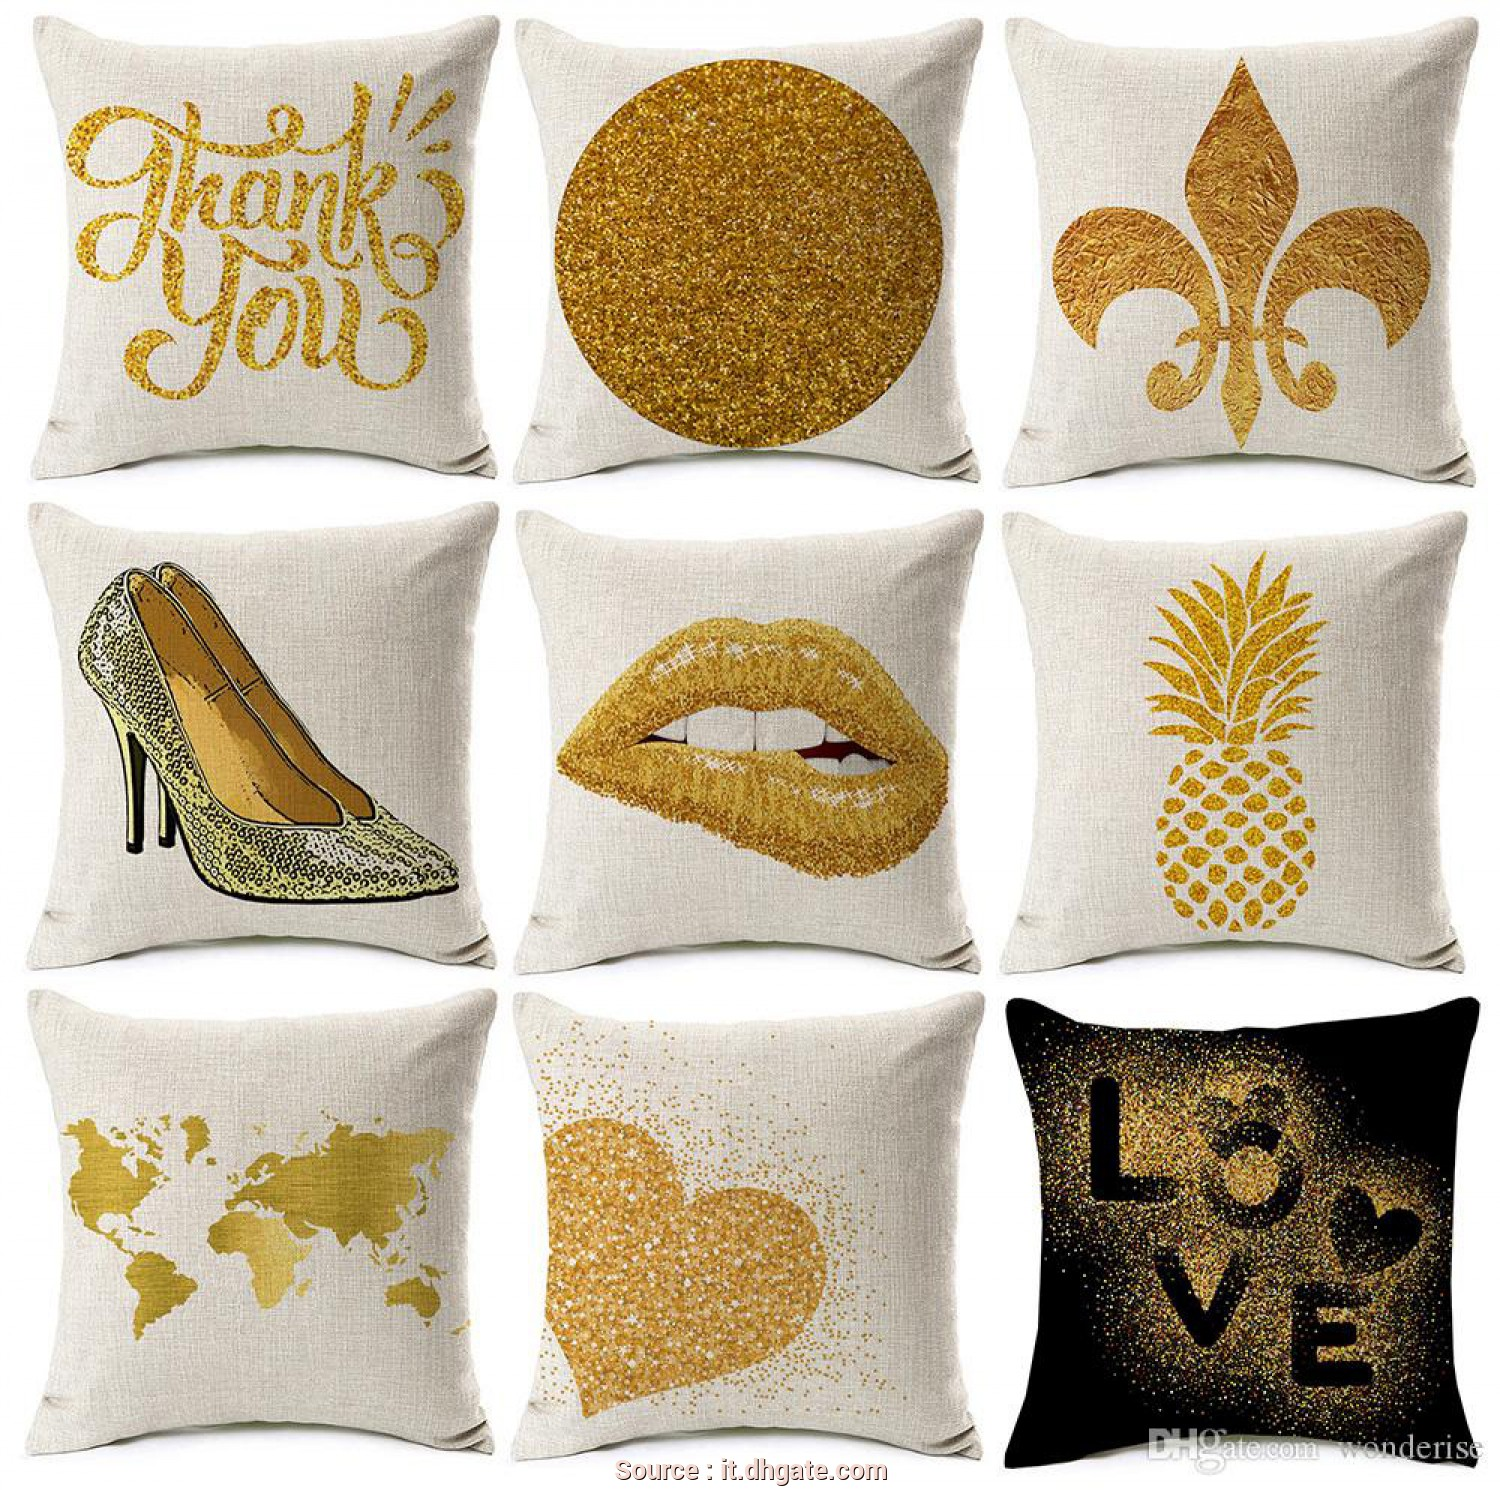 Cuscino Divano Beige, Casuale Acquista Copri Cuscino, Lips Tacco Alto Coprisedili Golden Pineapple World, Copricuscino Love Heart Divano Beige Lino Federa A $3.38, Wonderise